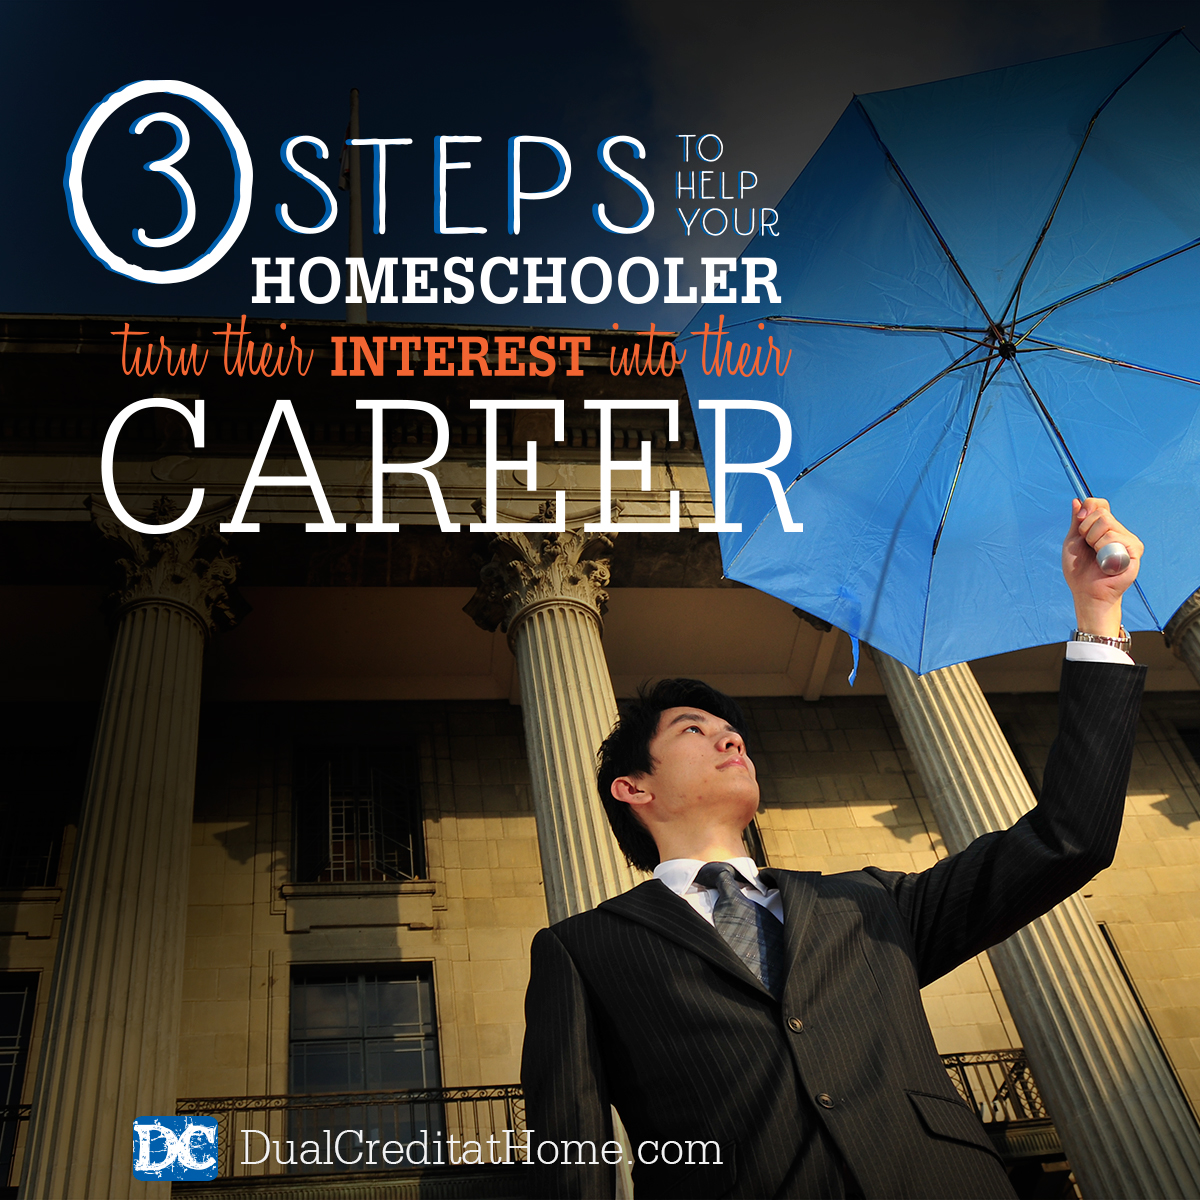 3 Steps to Help Your Homeschooler Turn their Interest into their Career